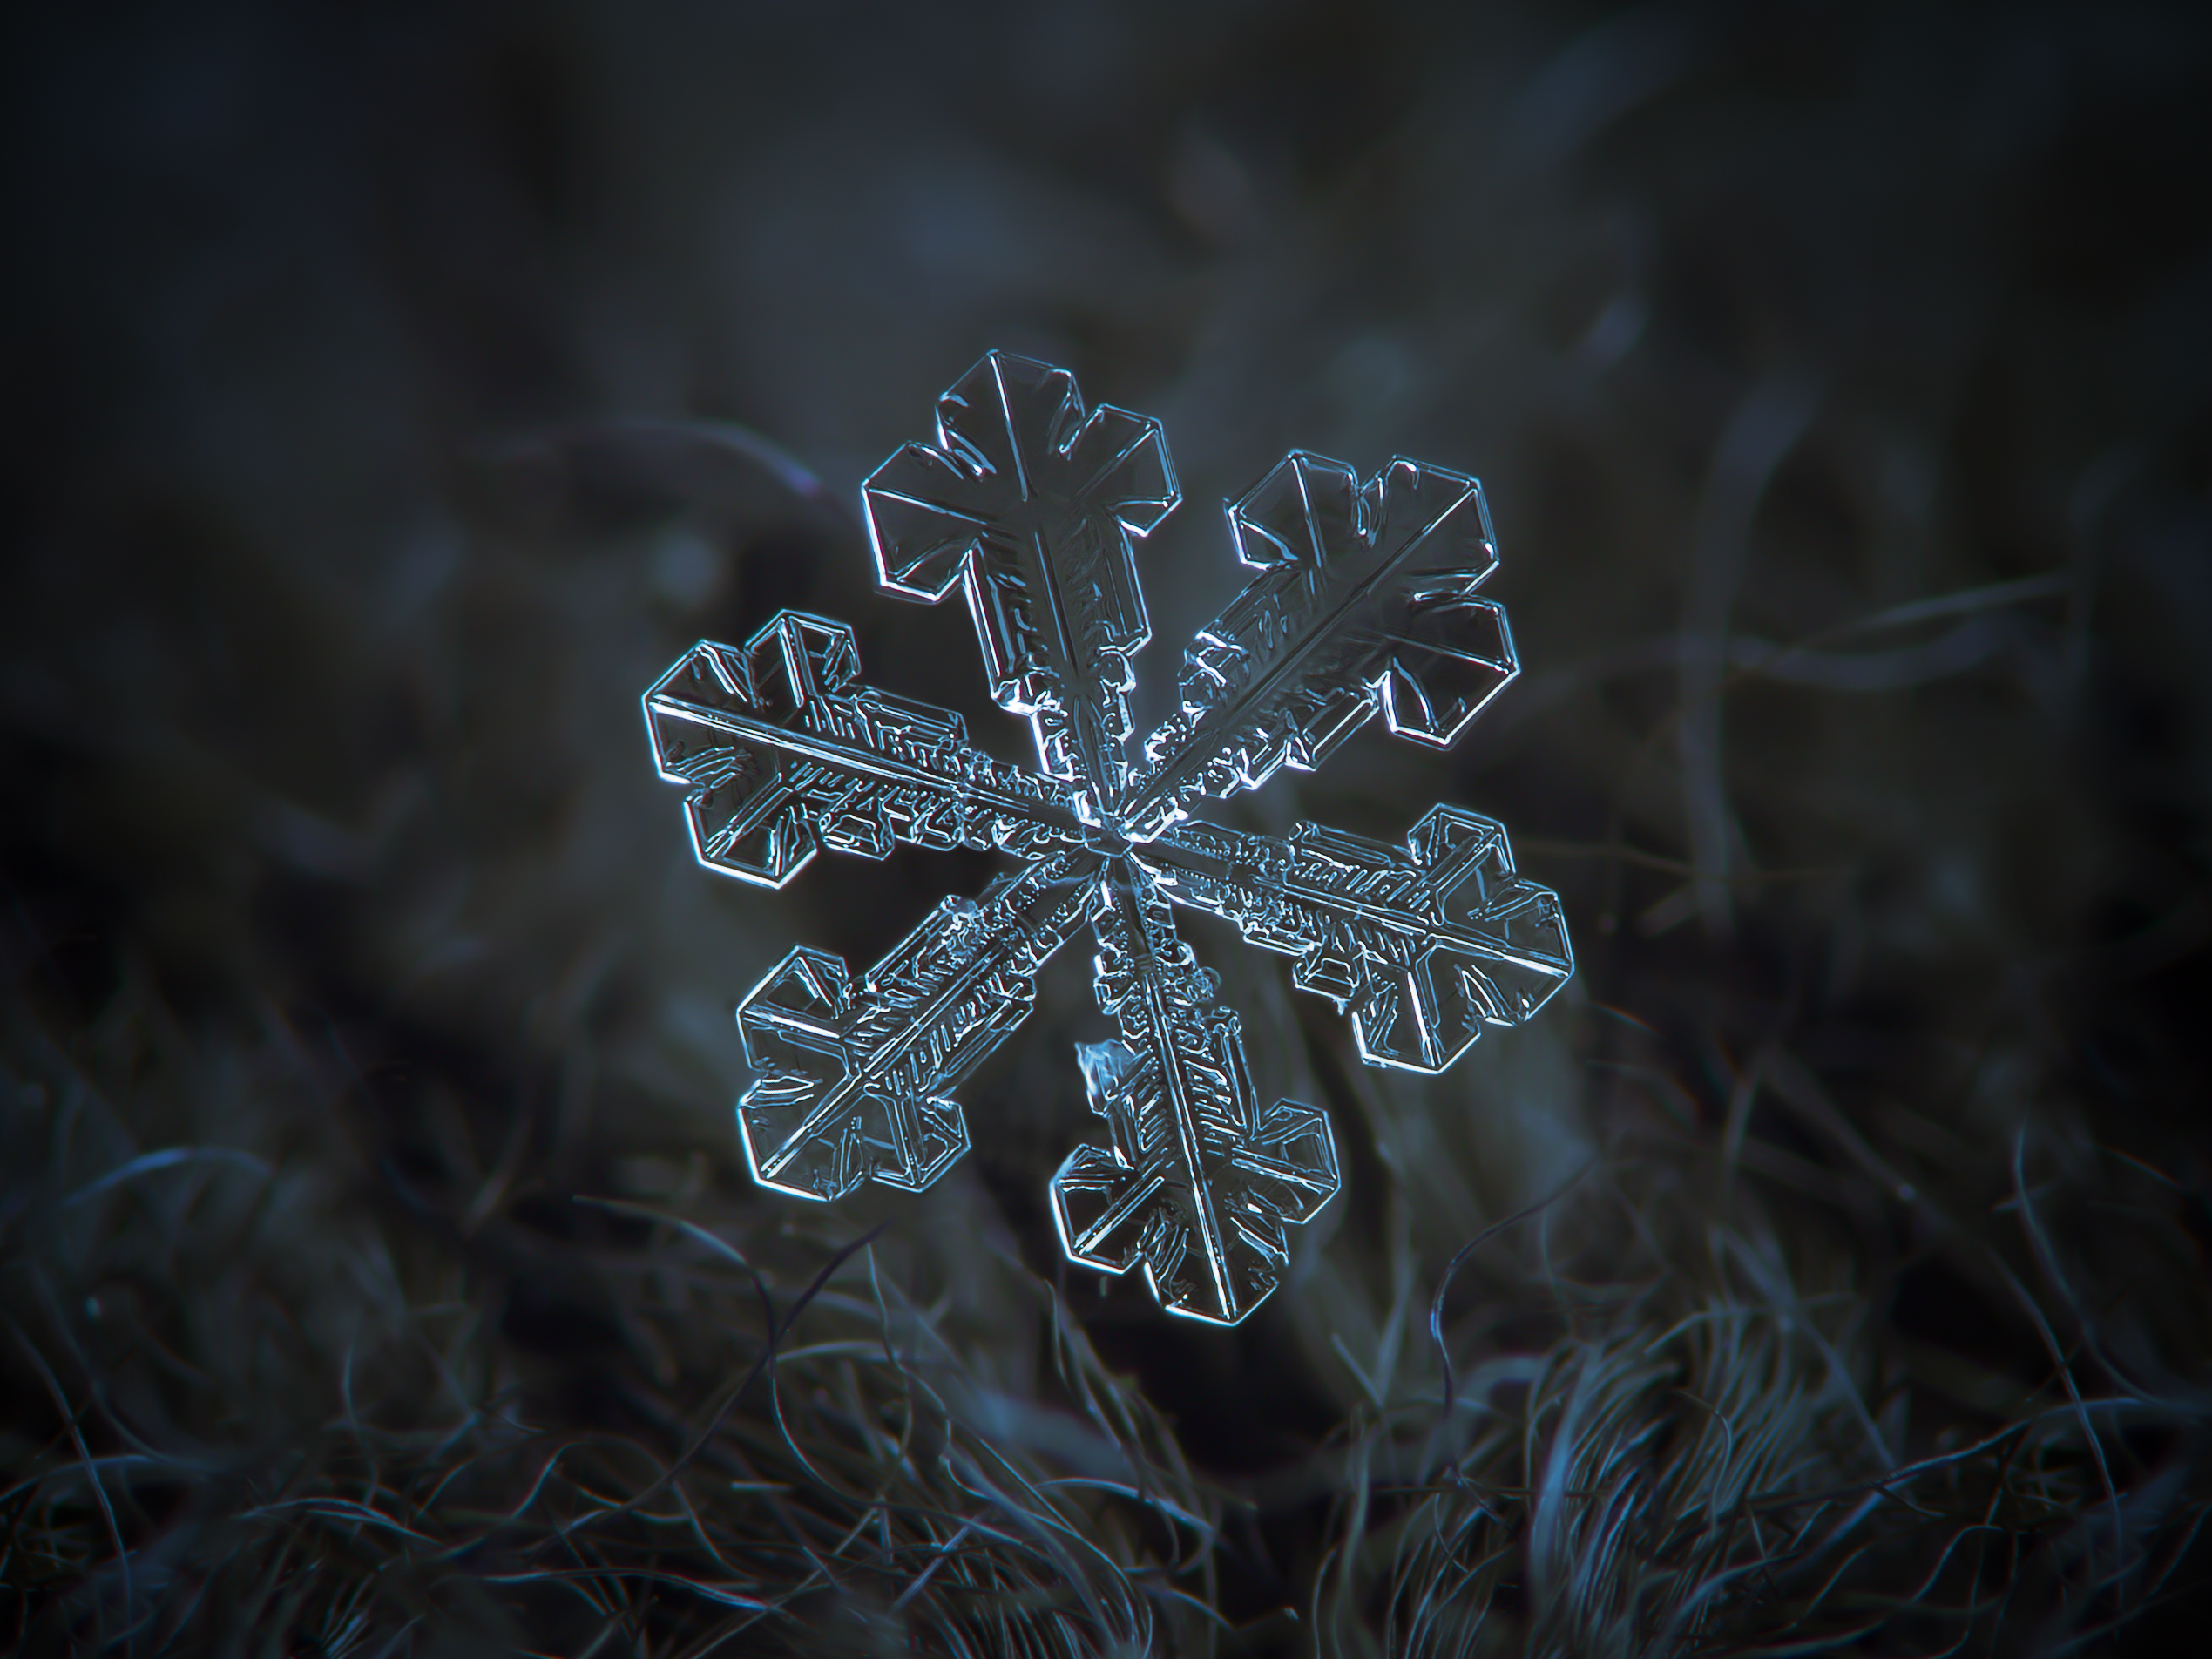 Falling Snow Wallpaper For Ipad Snowflake Macro Wallpapers High Quality Download Free